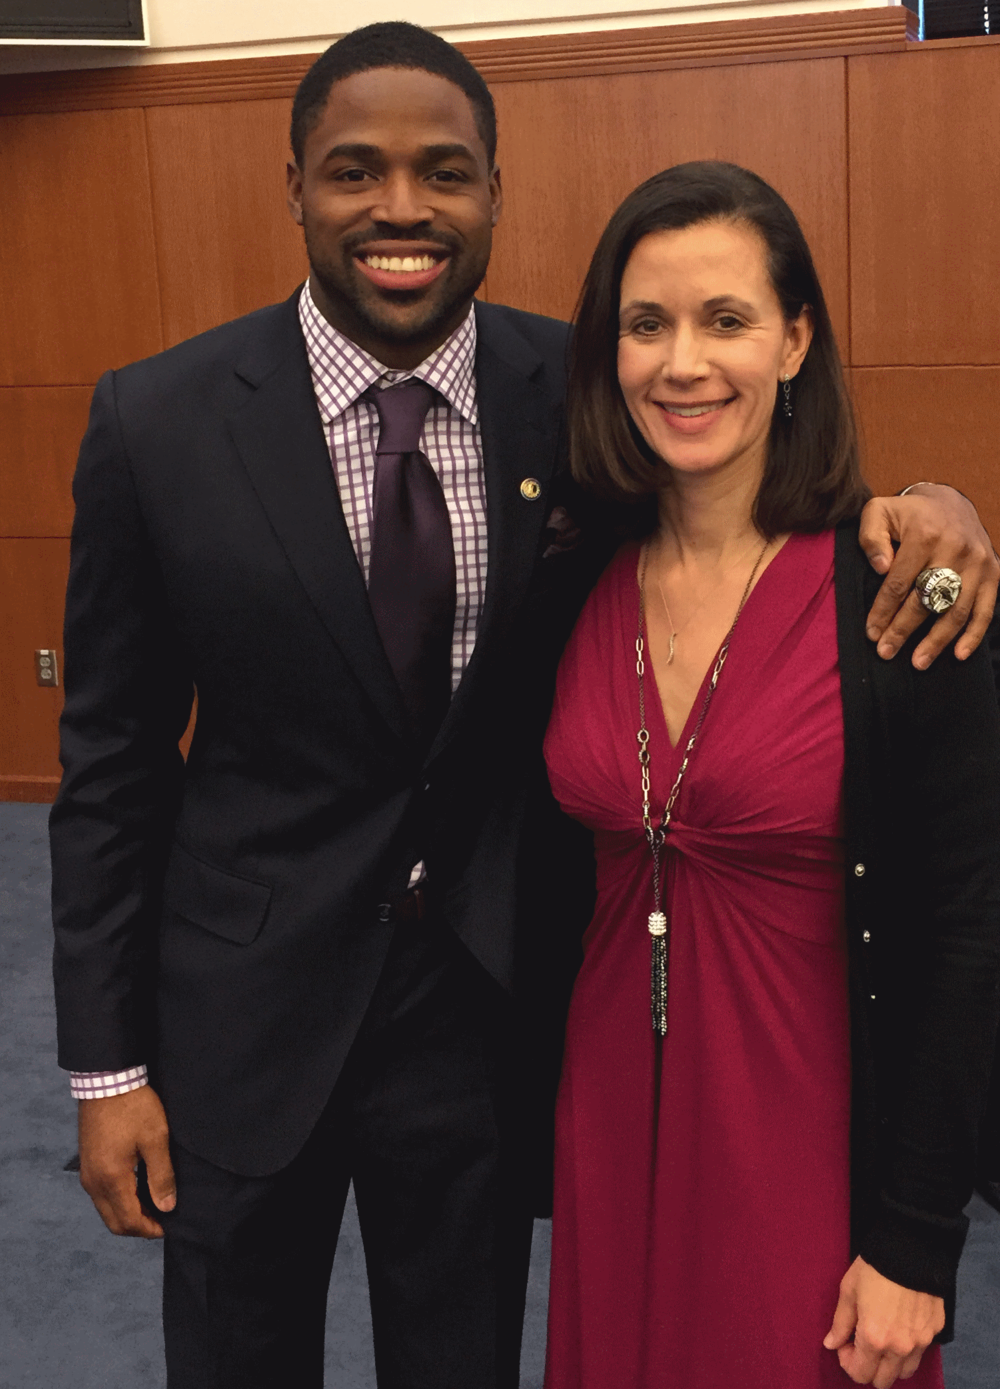 Commonwealth Council Members: Baltimore Ravens Torrey Smith and Nancy Farrell